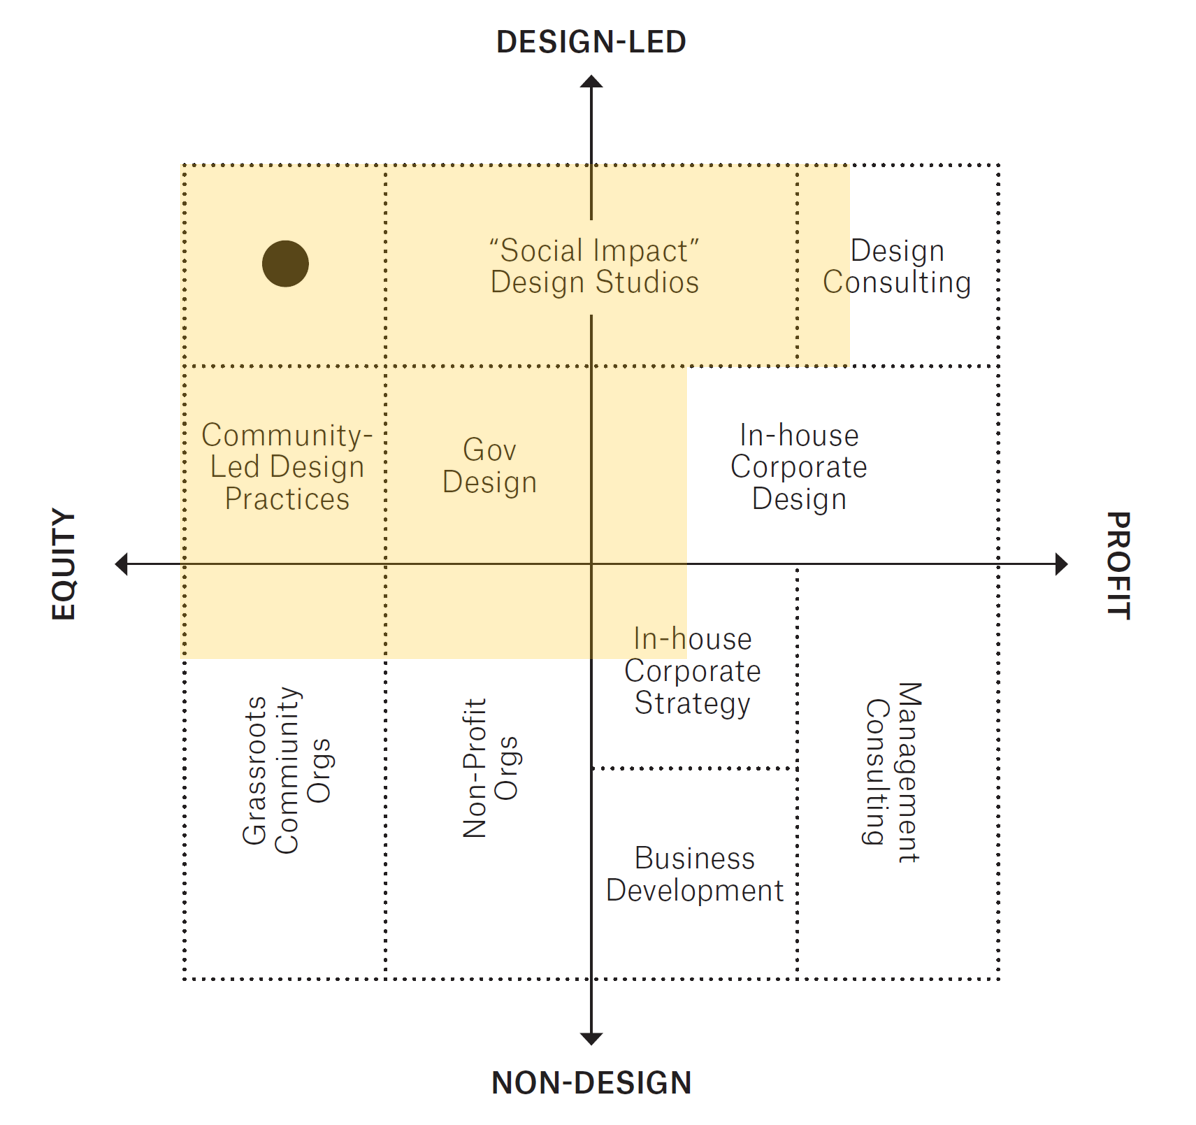 The Power of Designing for Social Impact